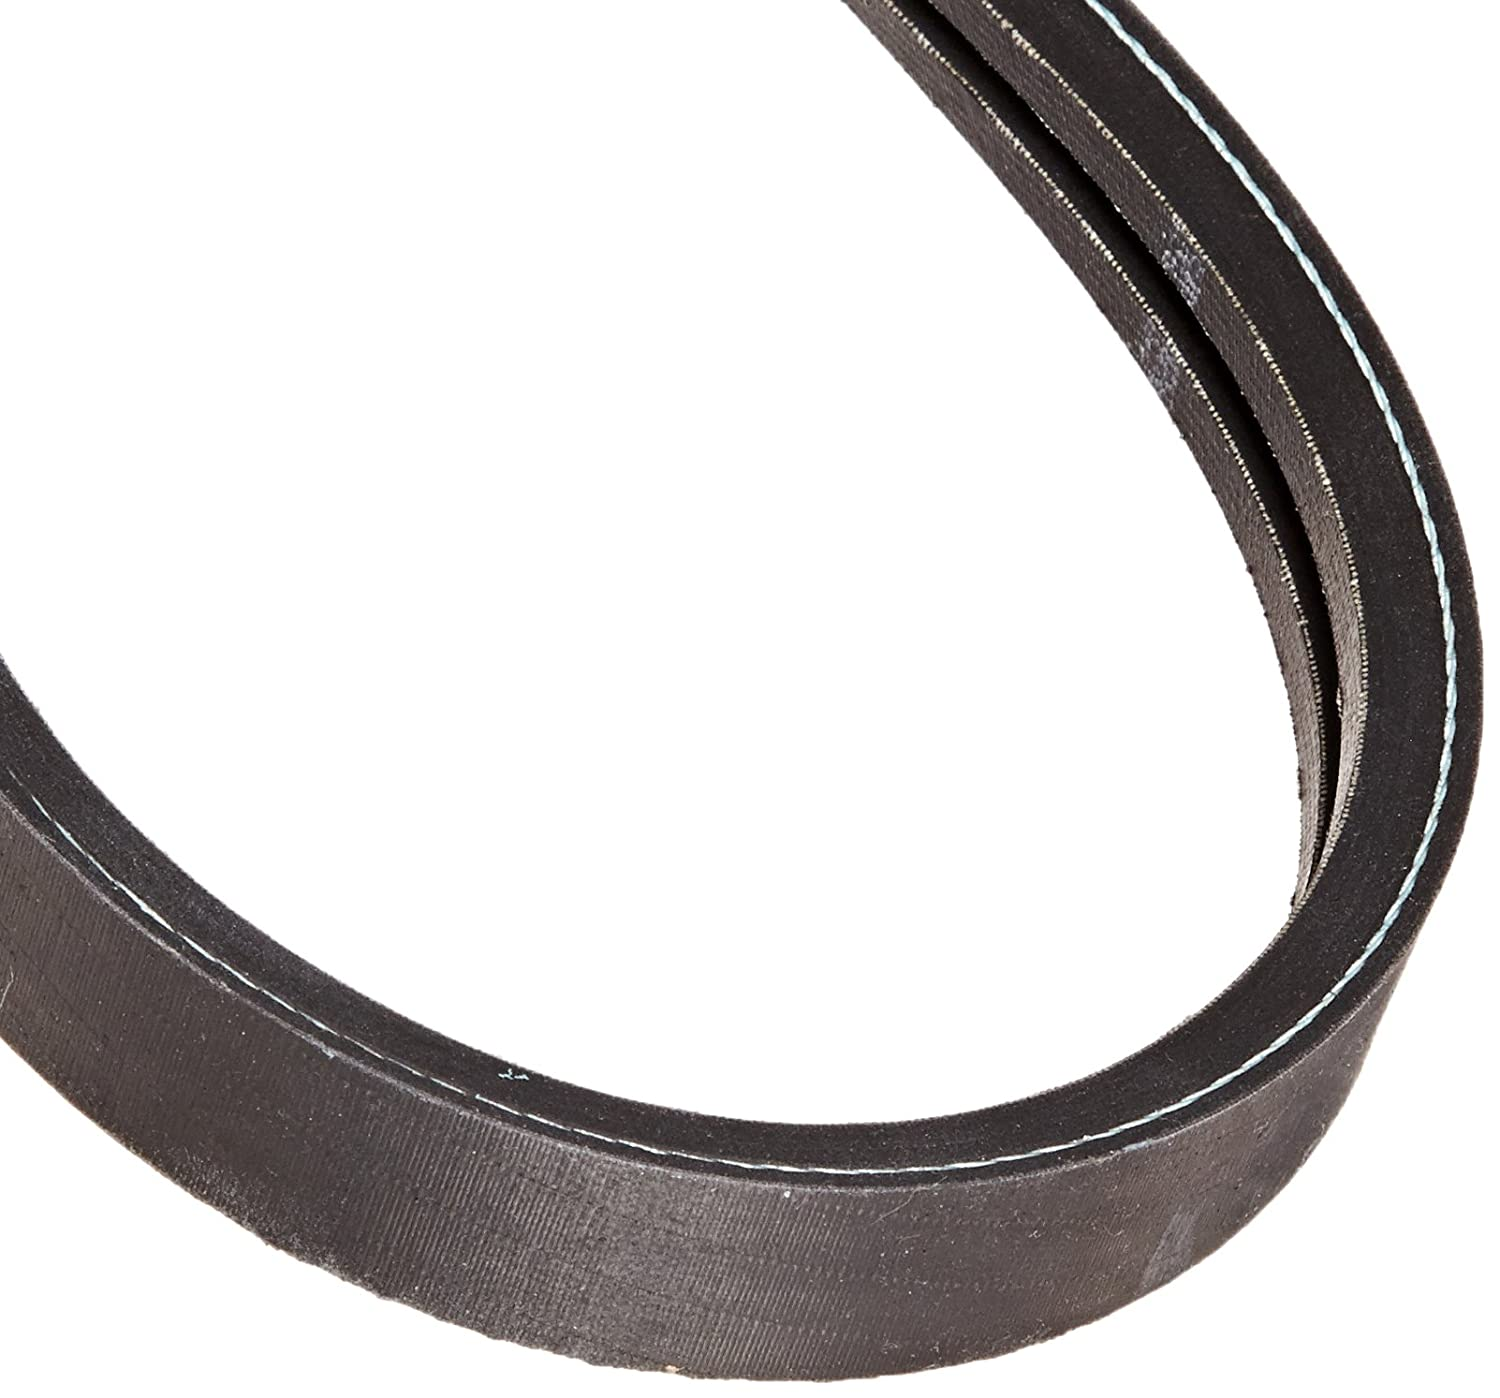 Gates 2/3V670 Super HC PowerBand Belt, 3V Section, 3/4